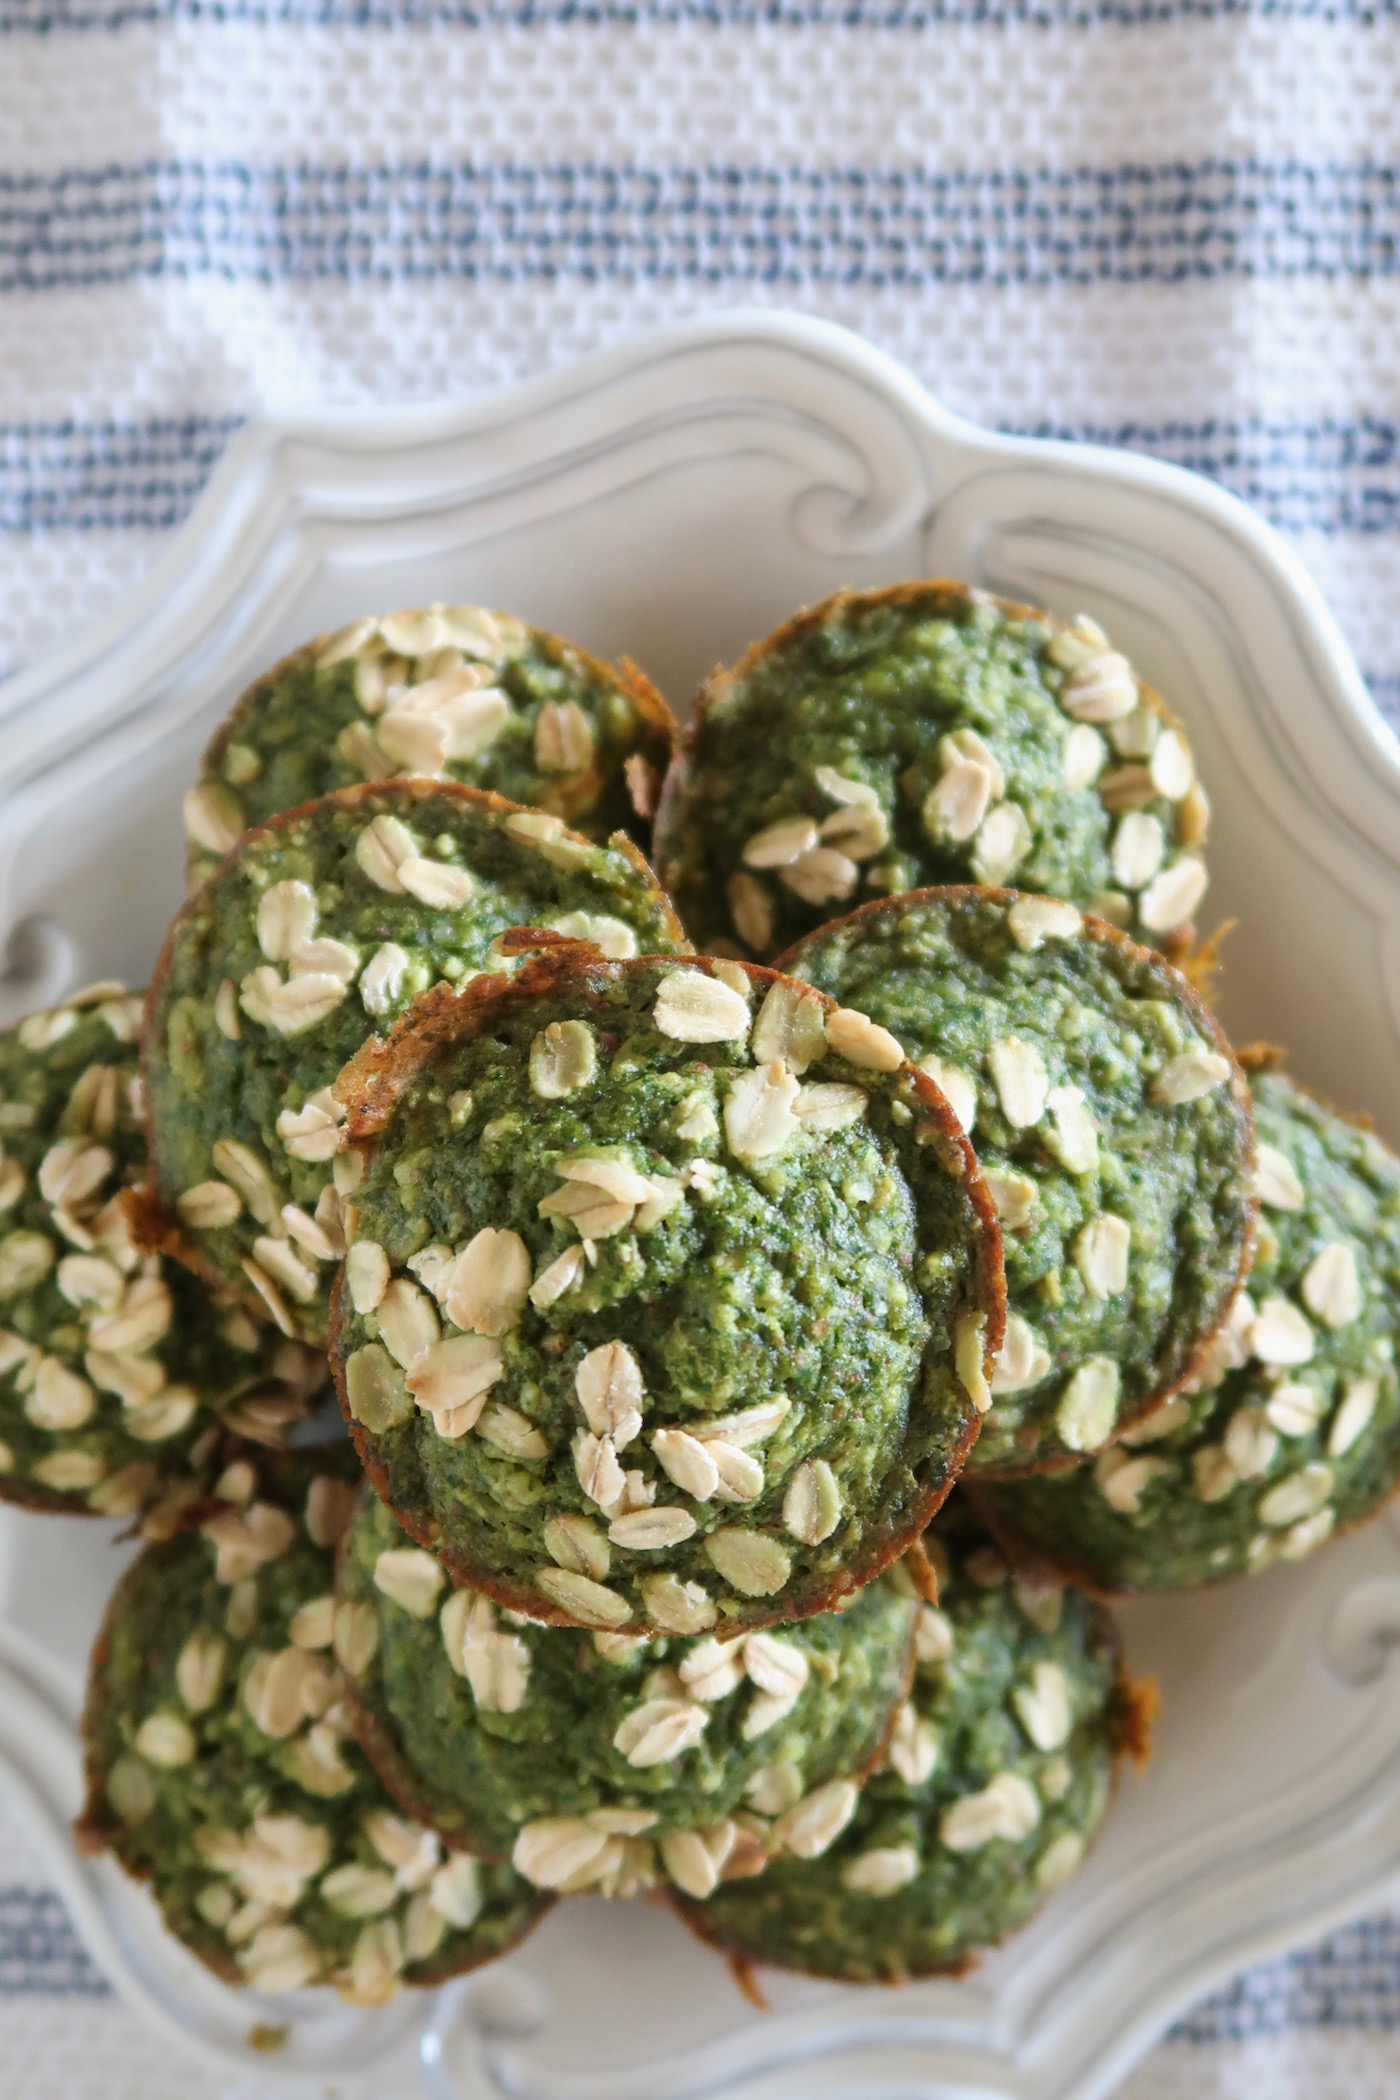 Ninja Turtle Muffins (packed with spinach and have no processed flour or sugar!)